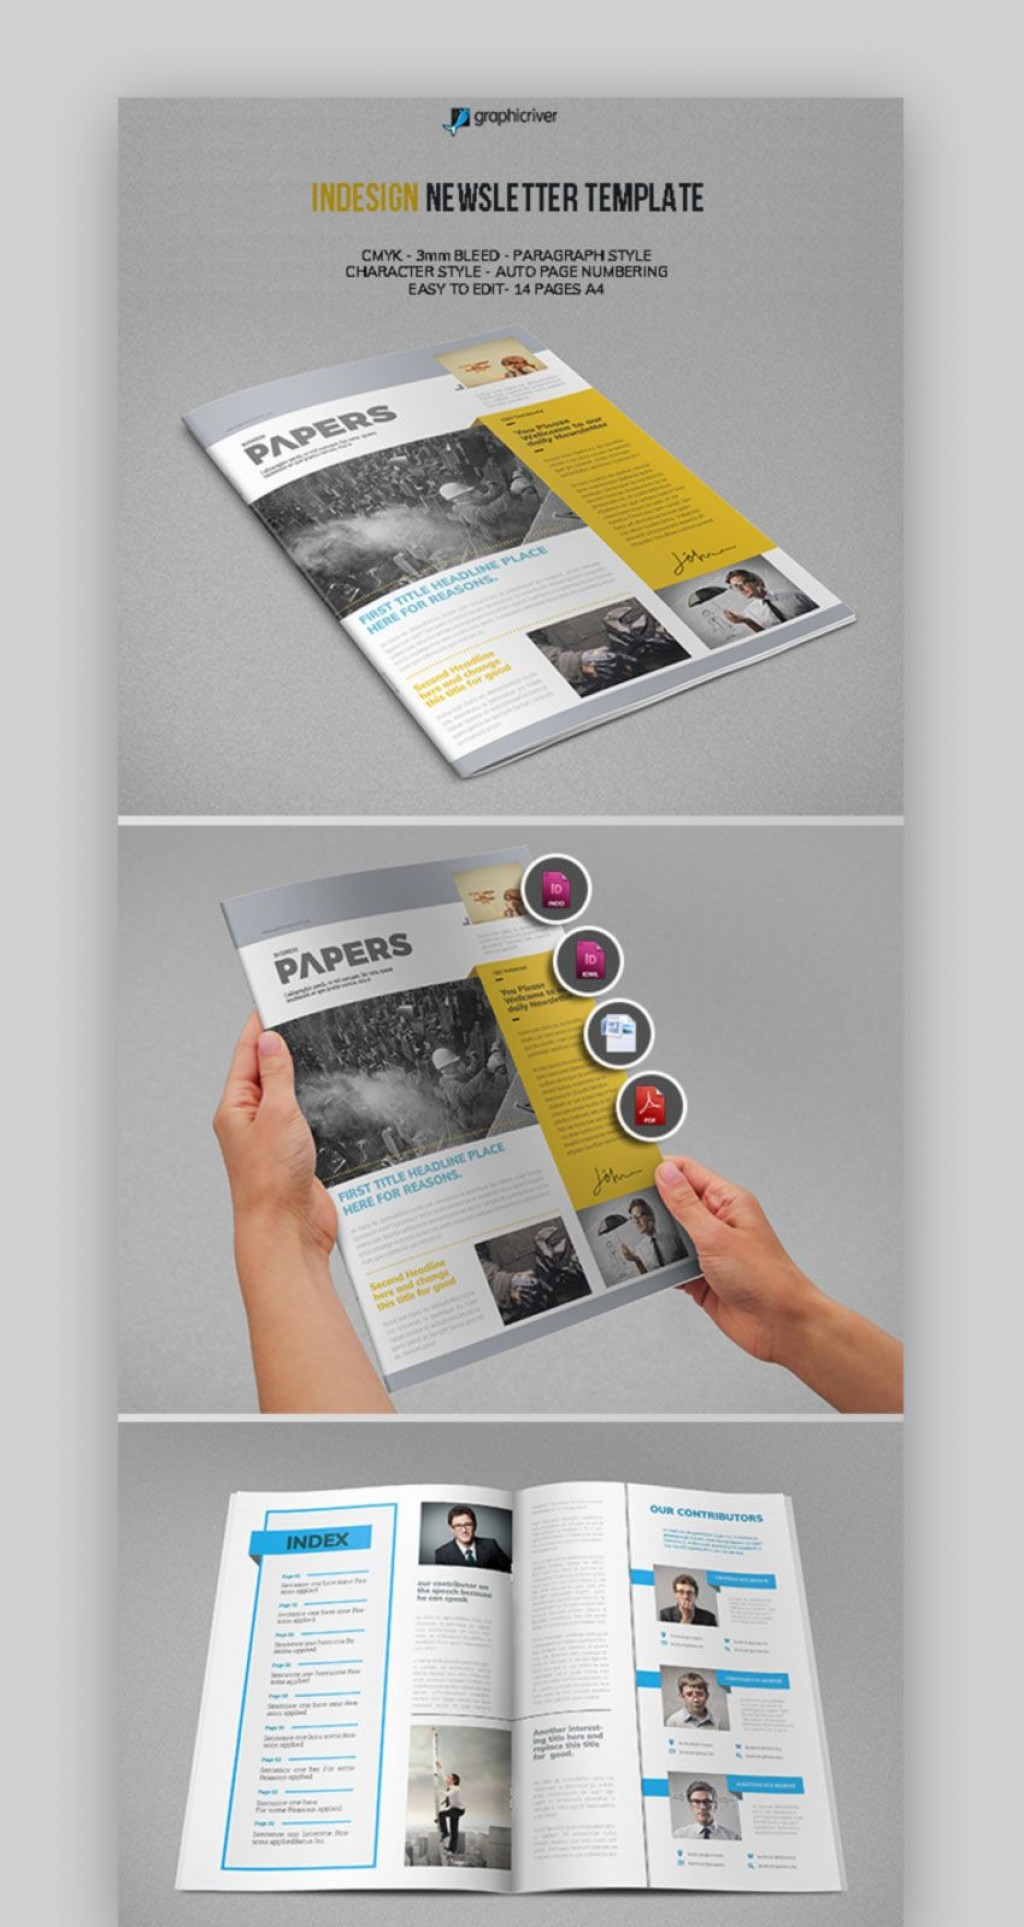 005 Fascinating Microsoft Word Newsletter Template Highest Quality  M 2007 Free Download For TeacherLarge